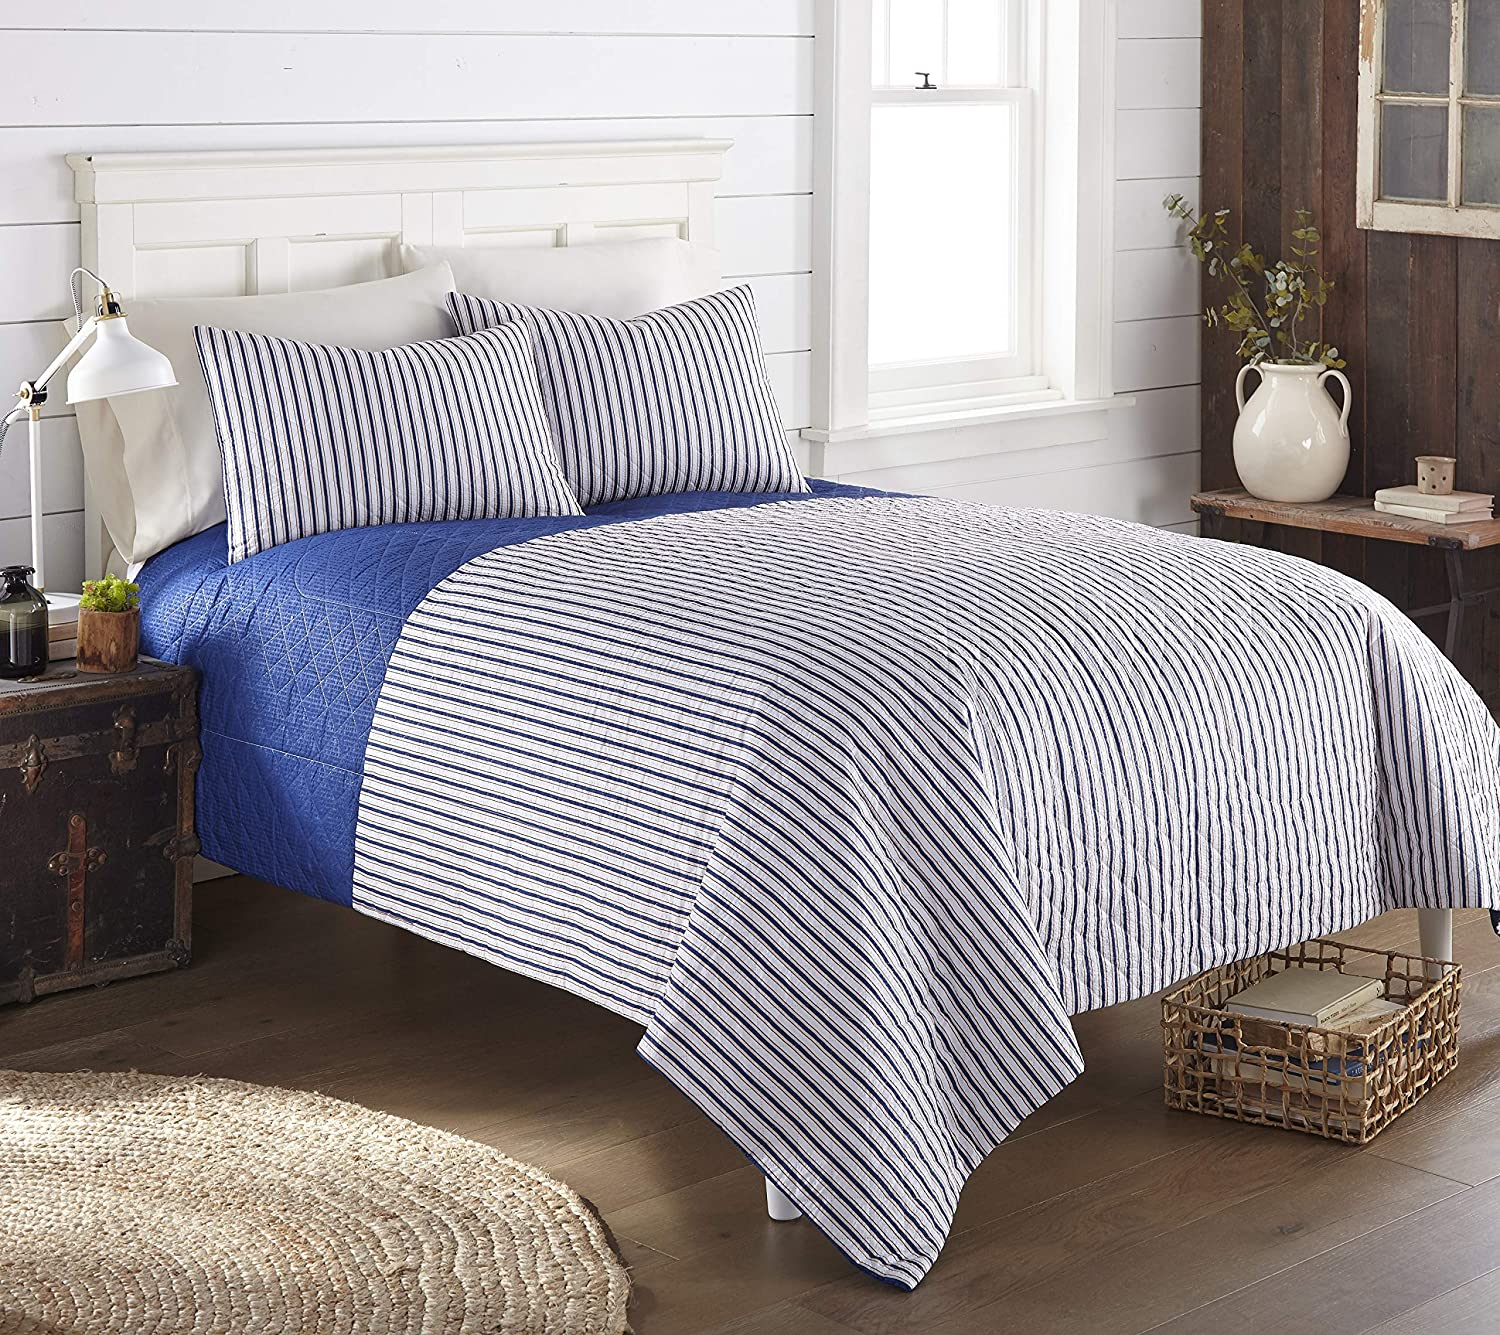 Shavel Home OFFicial Products Seersucker Raleigh Mall 6-in-1 Set Quilt Twin American